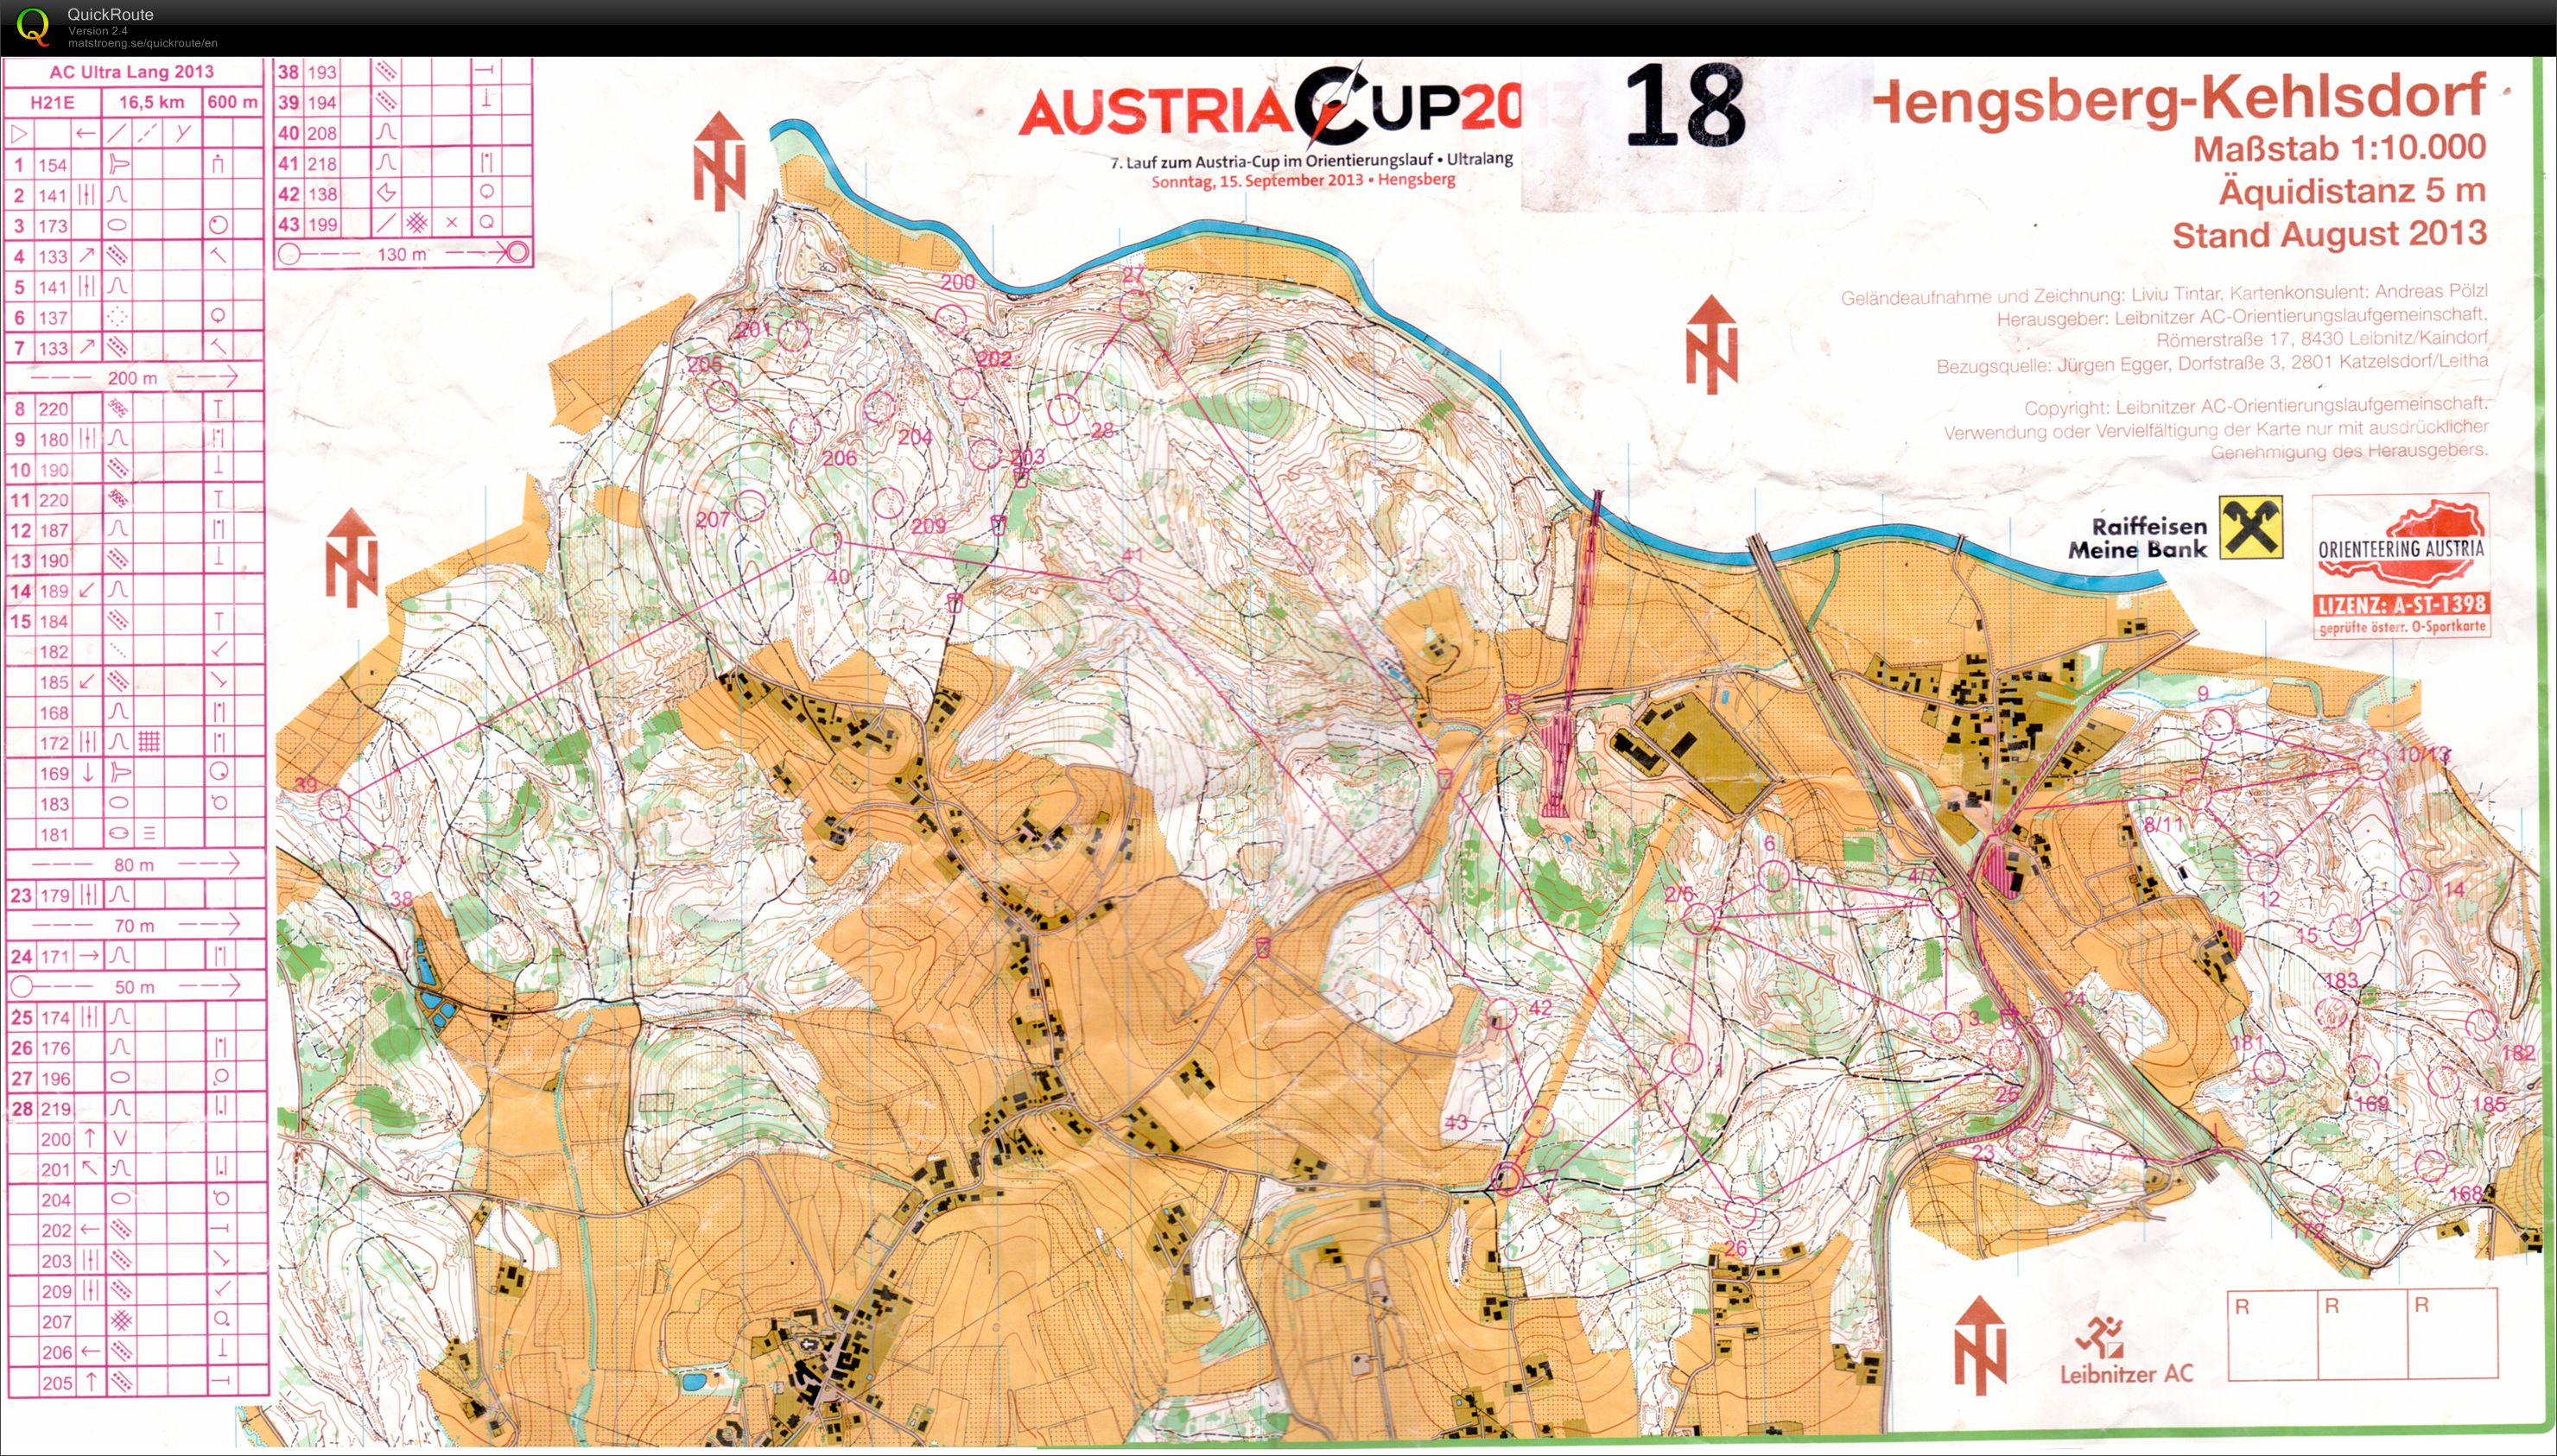 7. Austria Cup Long Distance (15/09/2013)